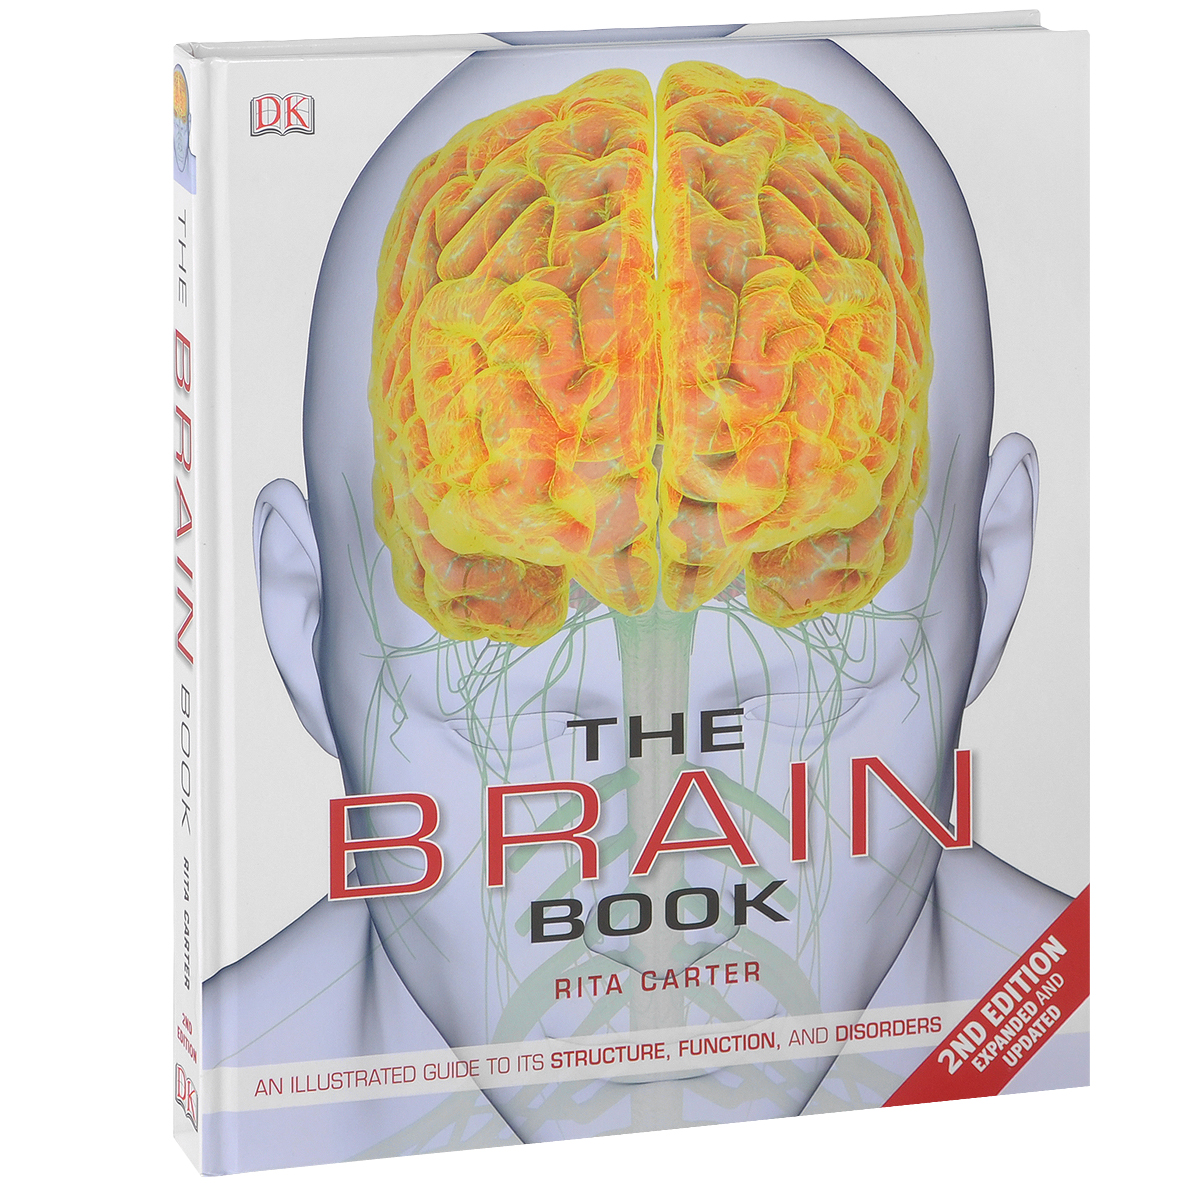 The Brain Book ben buchanan brain structure and circuitry in body dysmorphic disorder